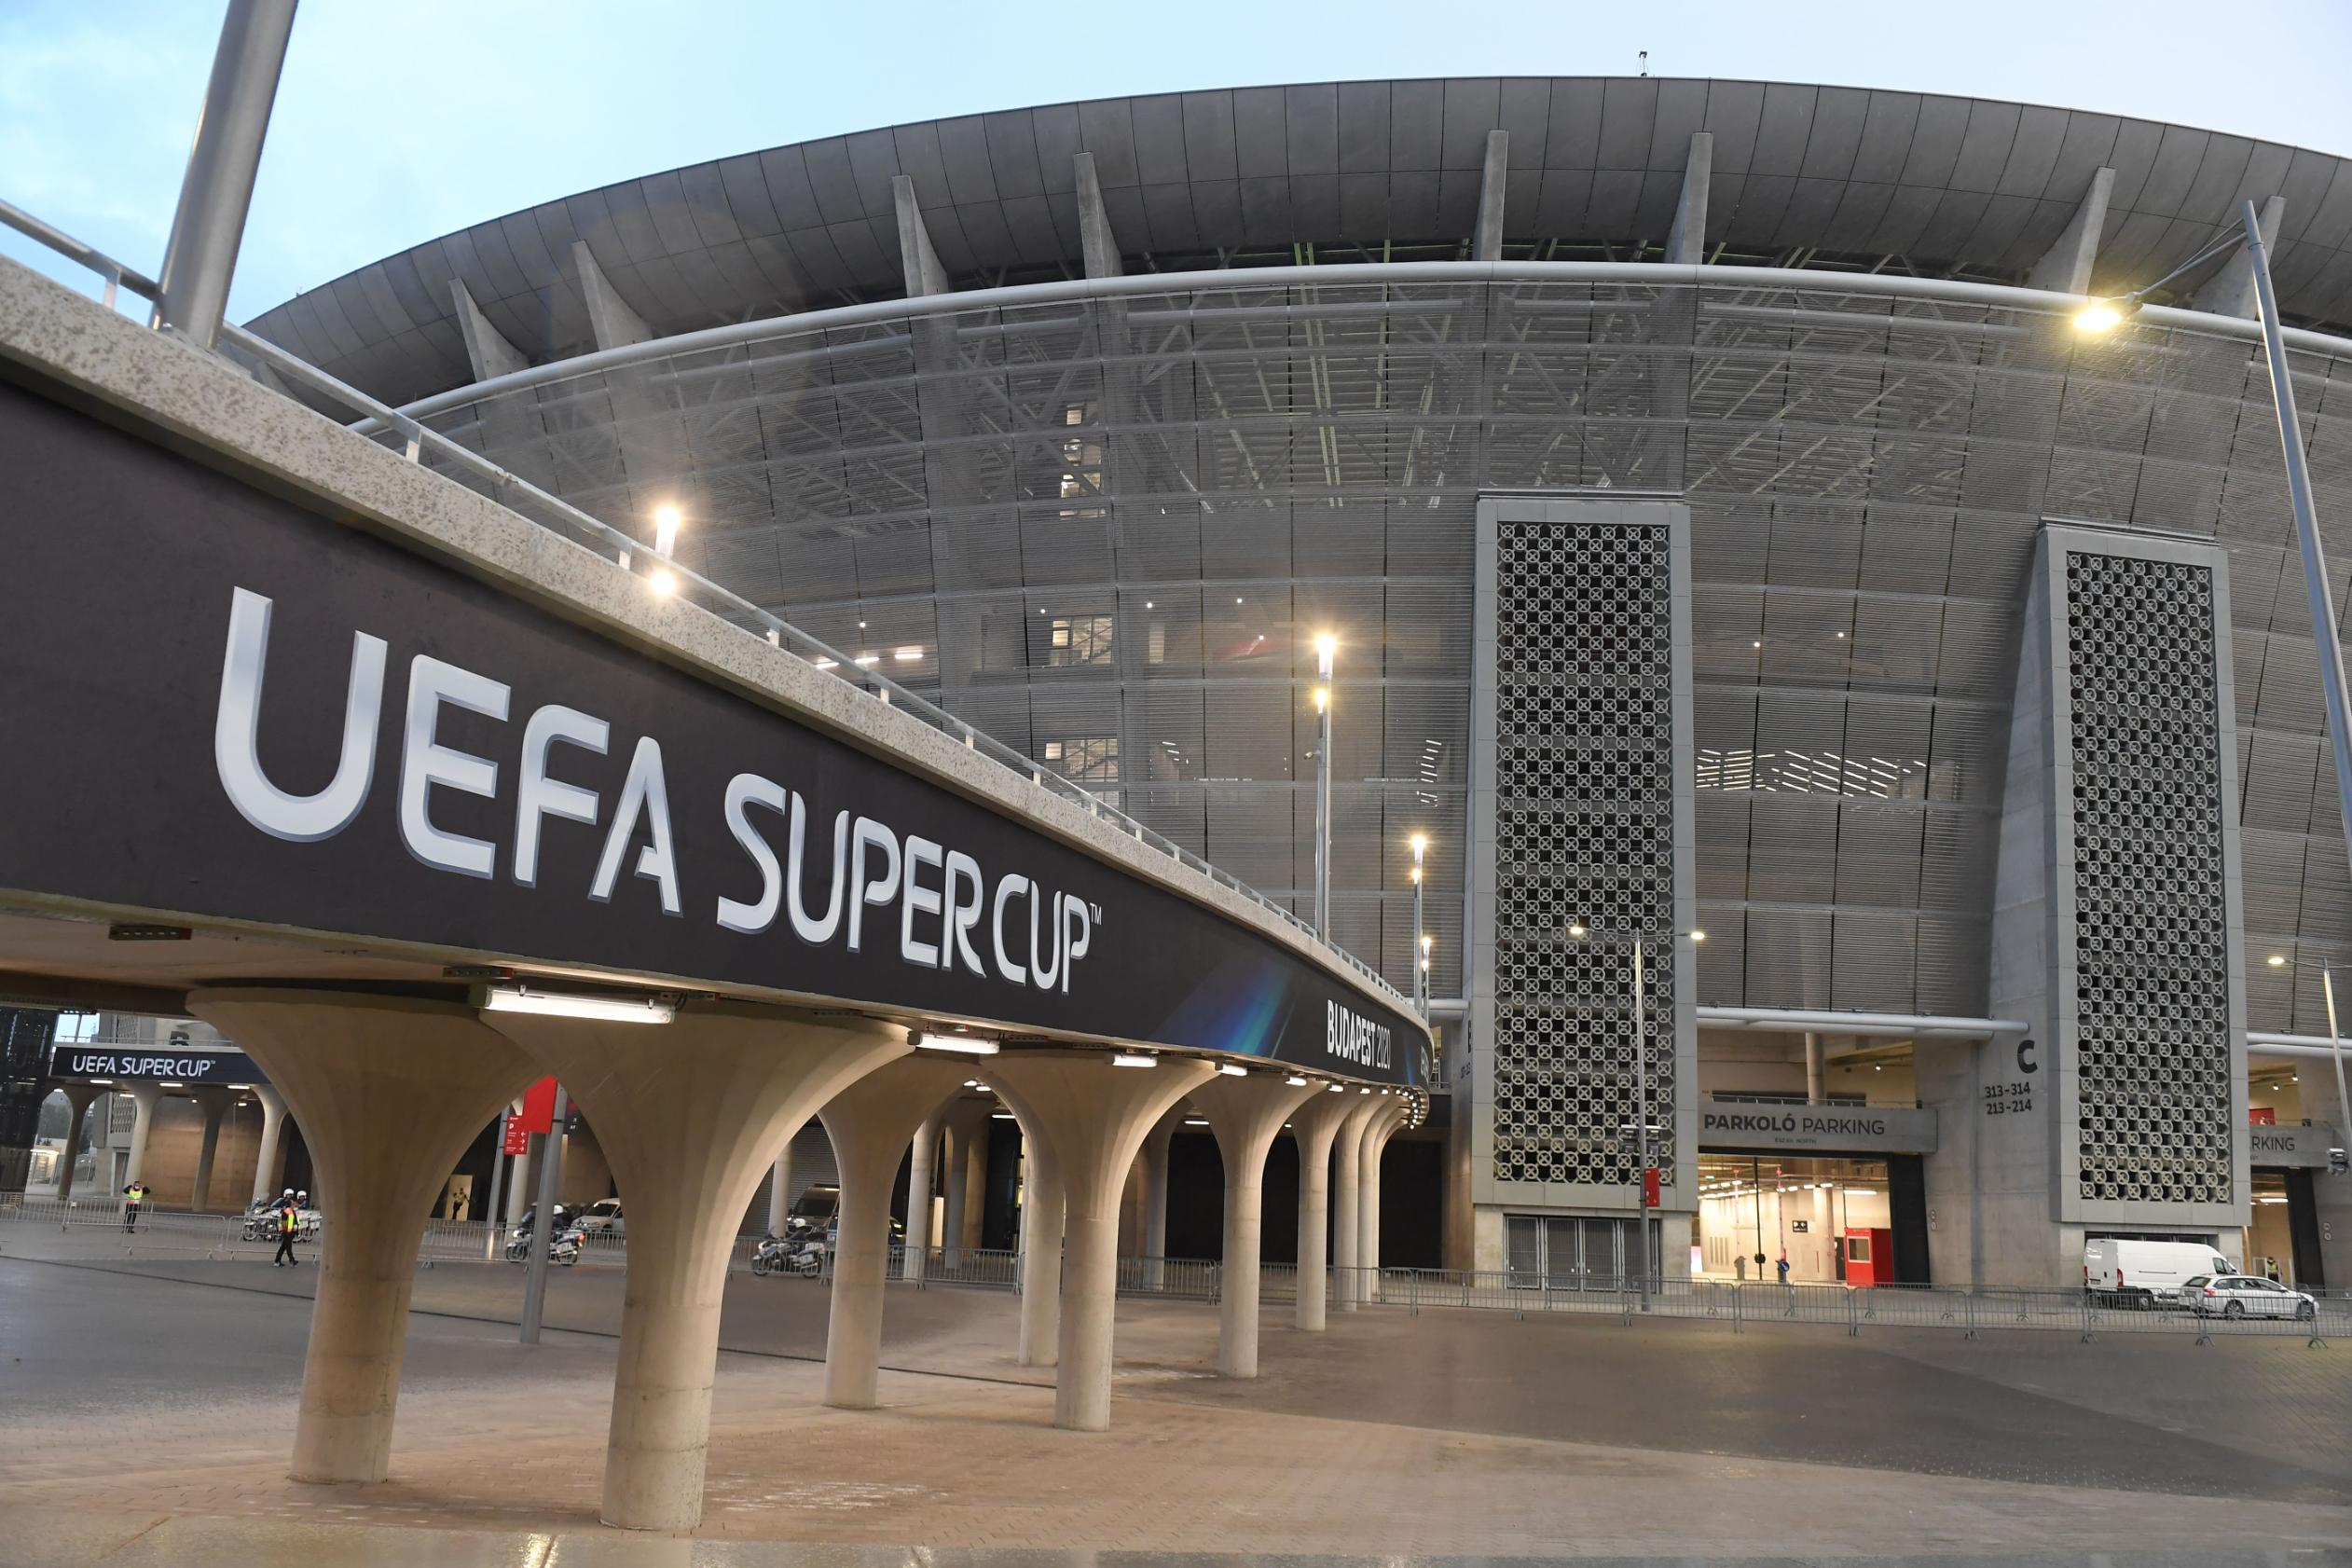 Budapest welcomes 15,500 fans for UEFA Super Cup amid growing coronavirus fears